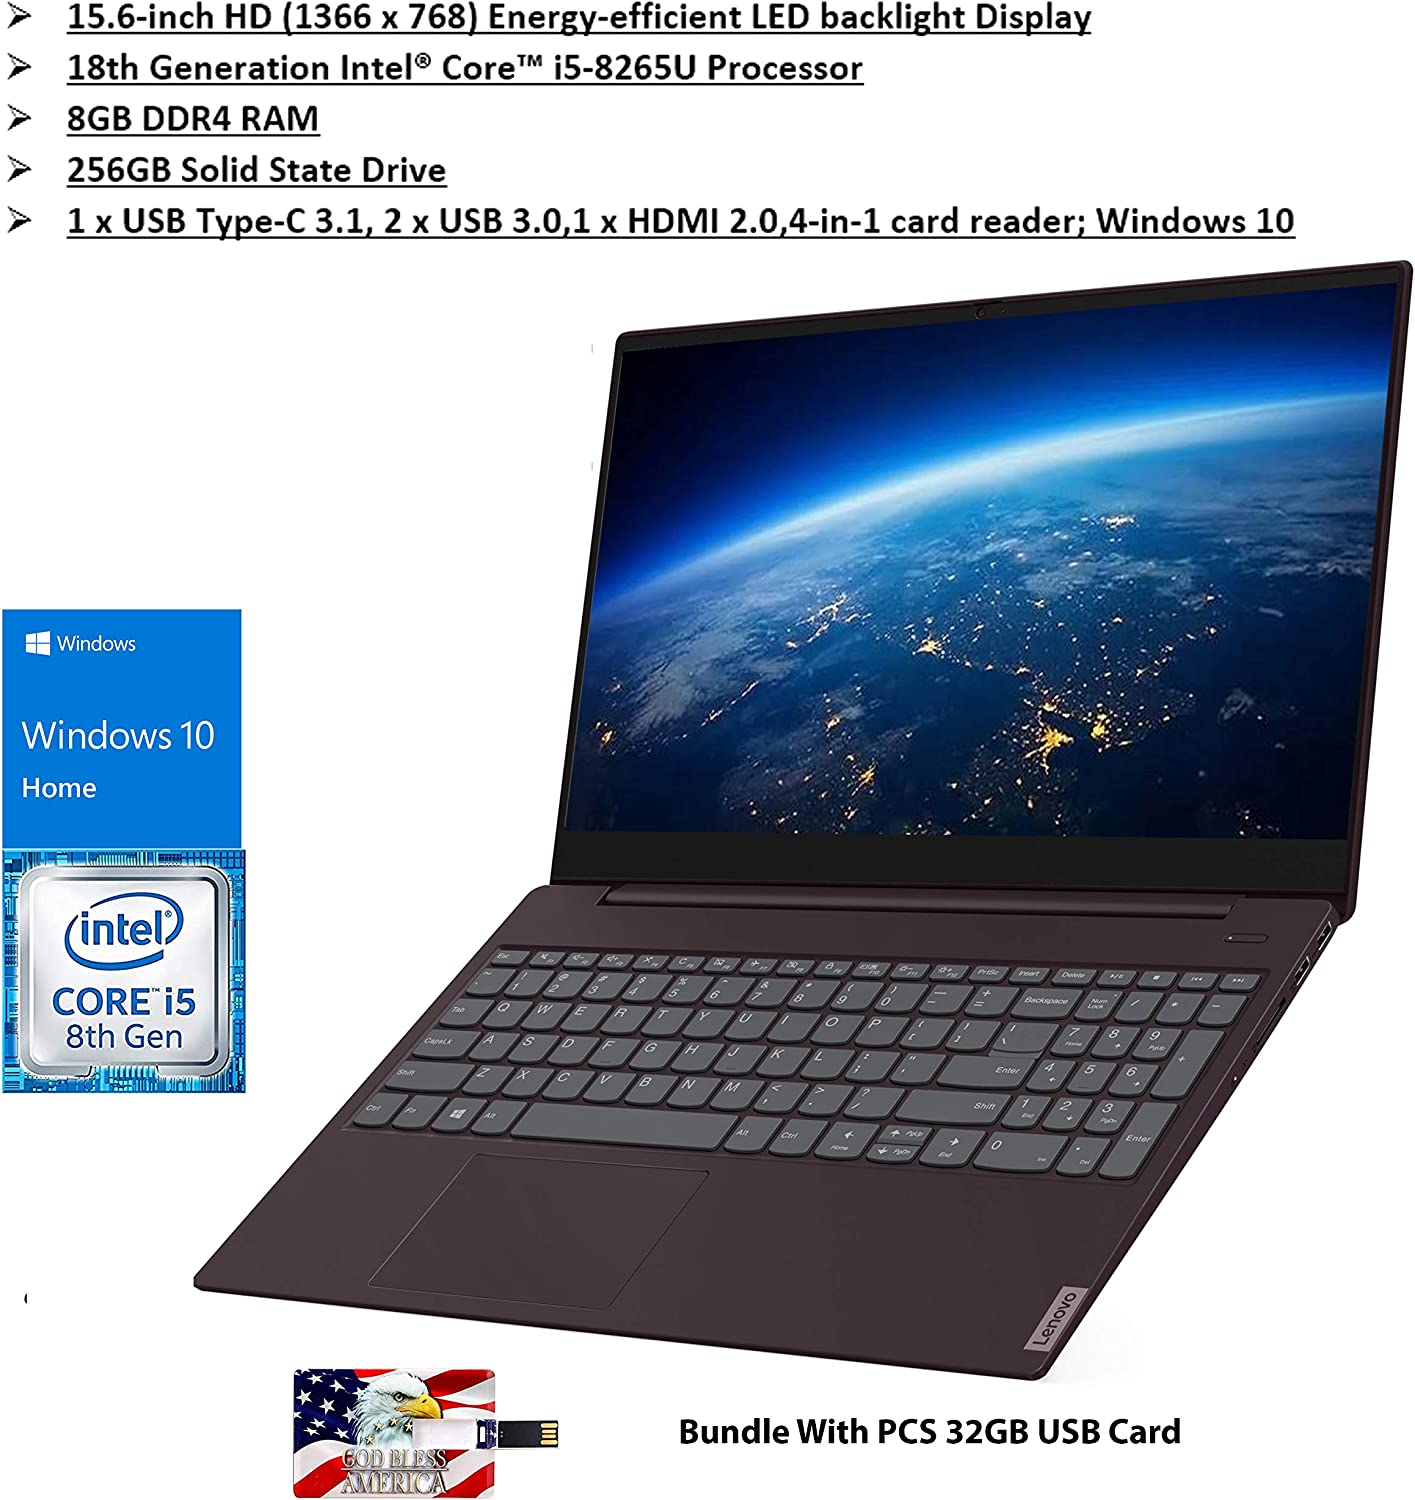 "New Lenovo S340 15 15.6"" HD Intel Core i5-8265U 8GB DDR4 RAM 256GB SSD Intel UHD Graphics 620 USB Type-C 3.1, 2 x USB 3.0 Dark Orchid Windows 10"